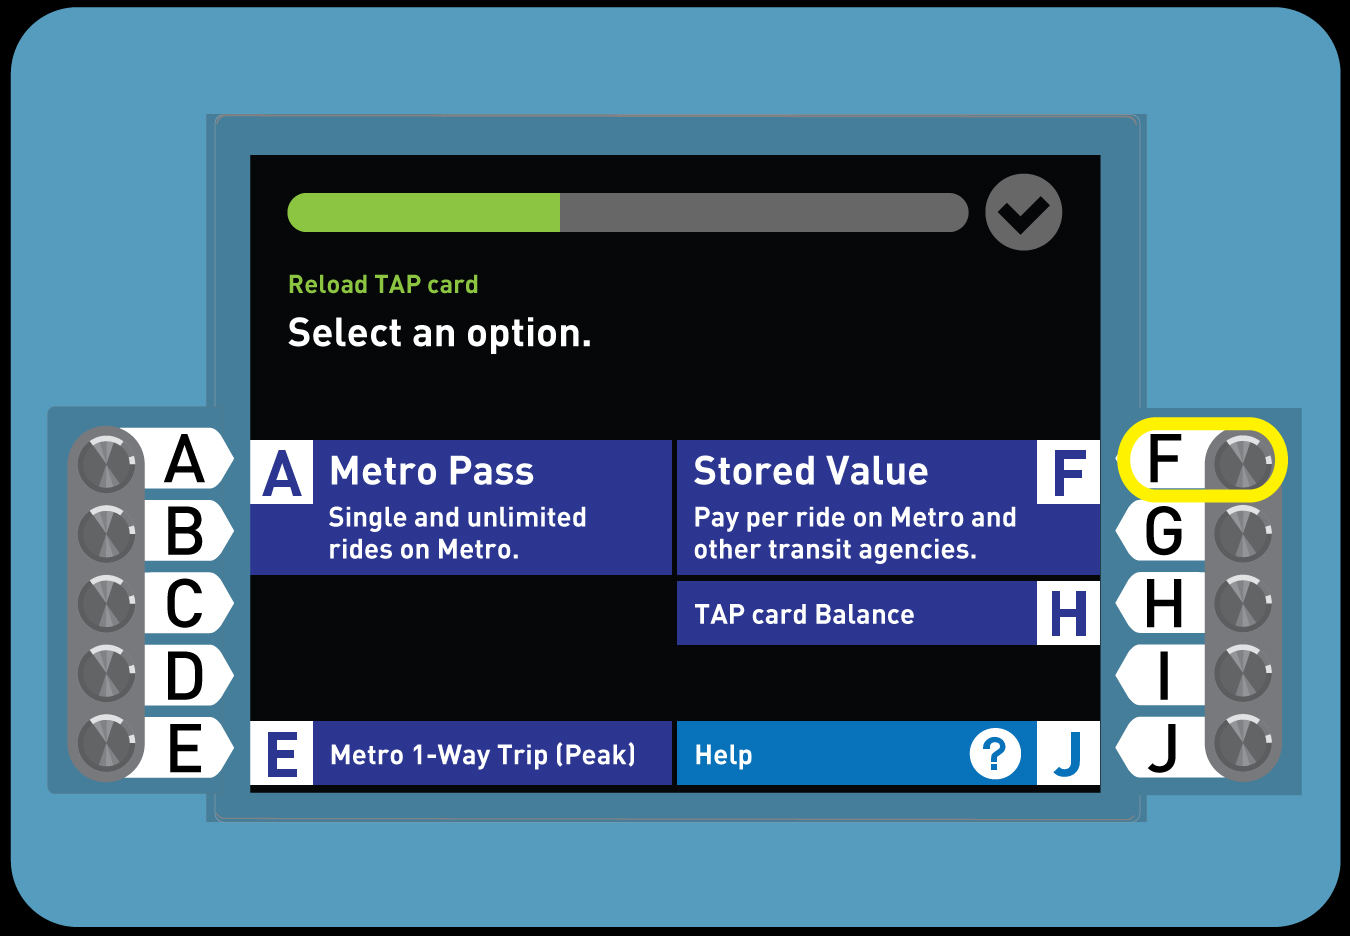 4. Buy a Senior TAP card with Stored Value